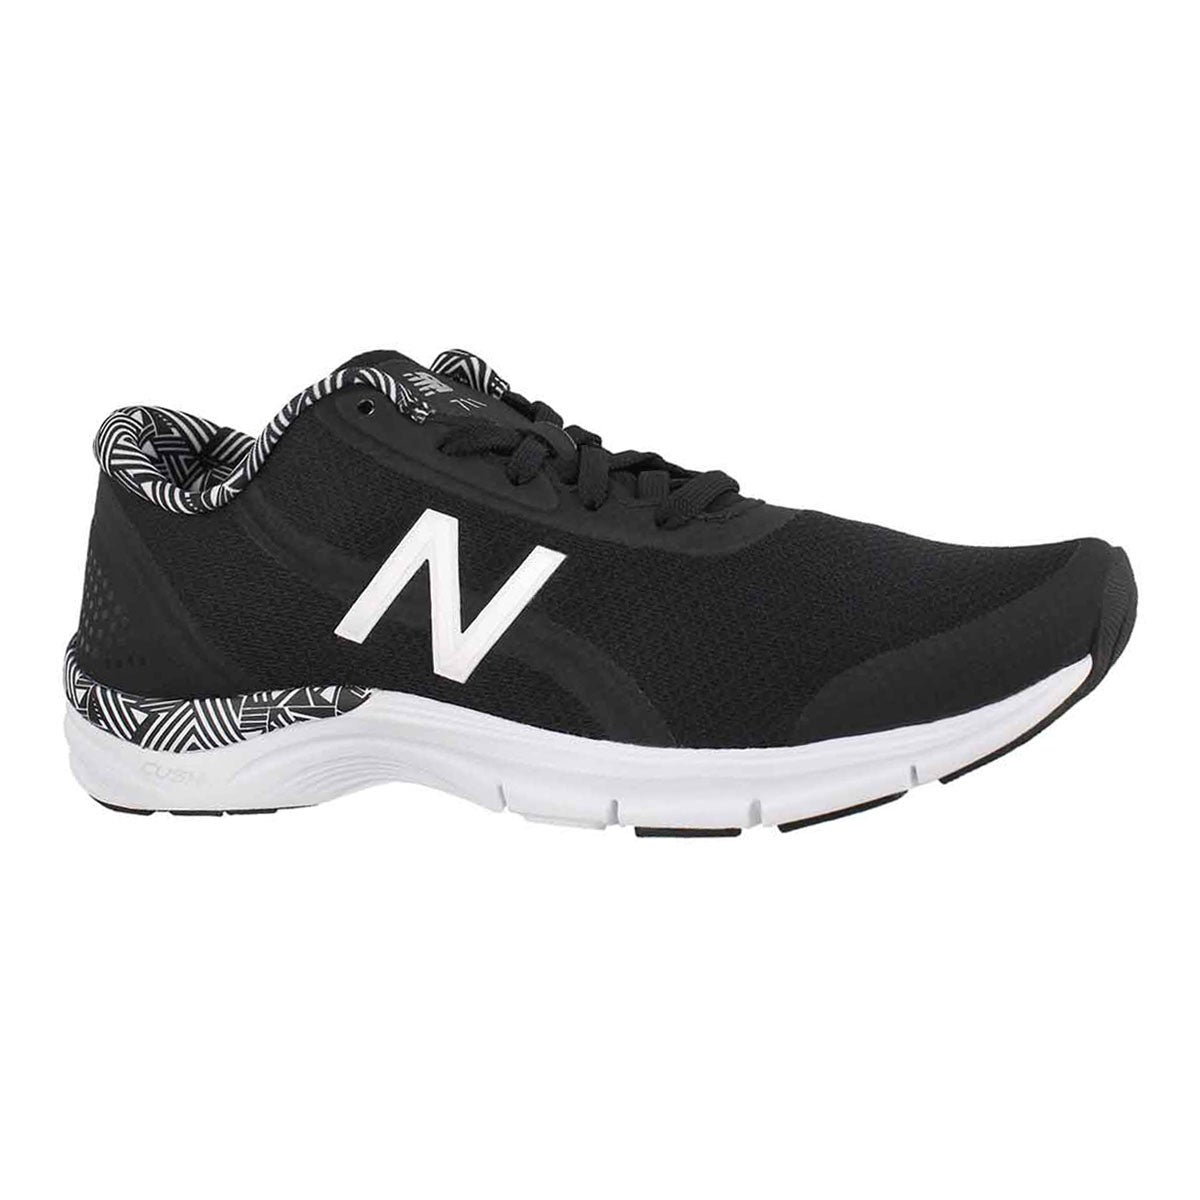 Women's 711v3 black/white lace up sneakers